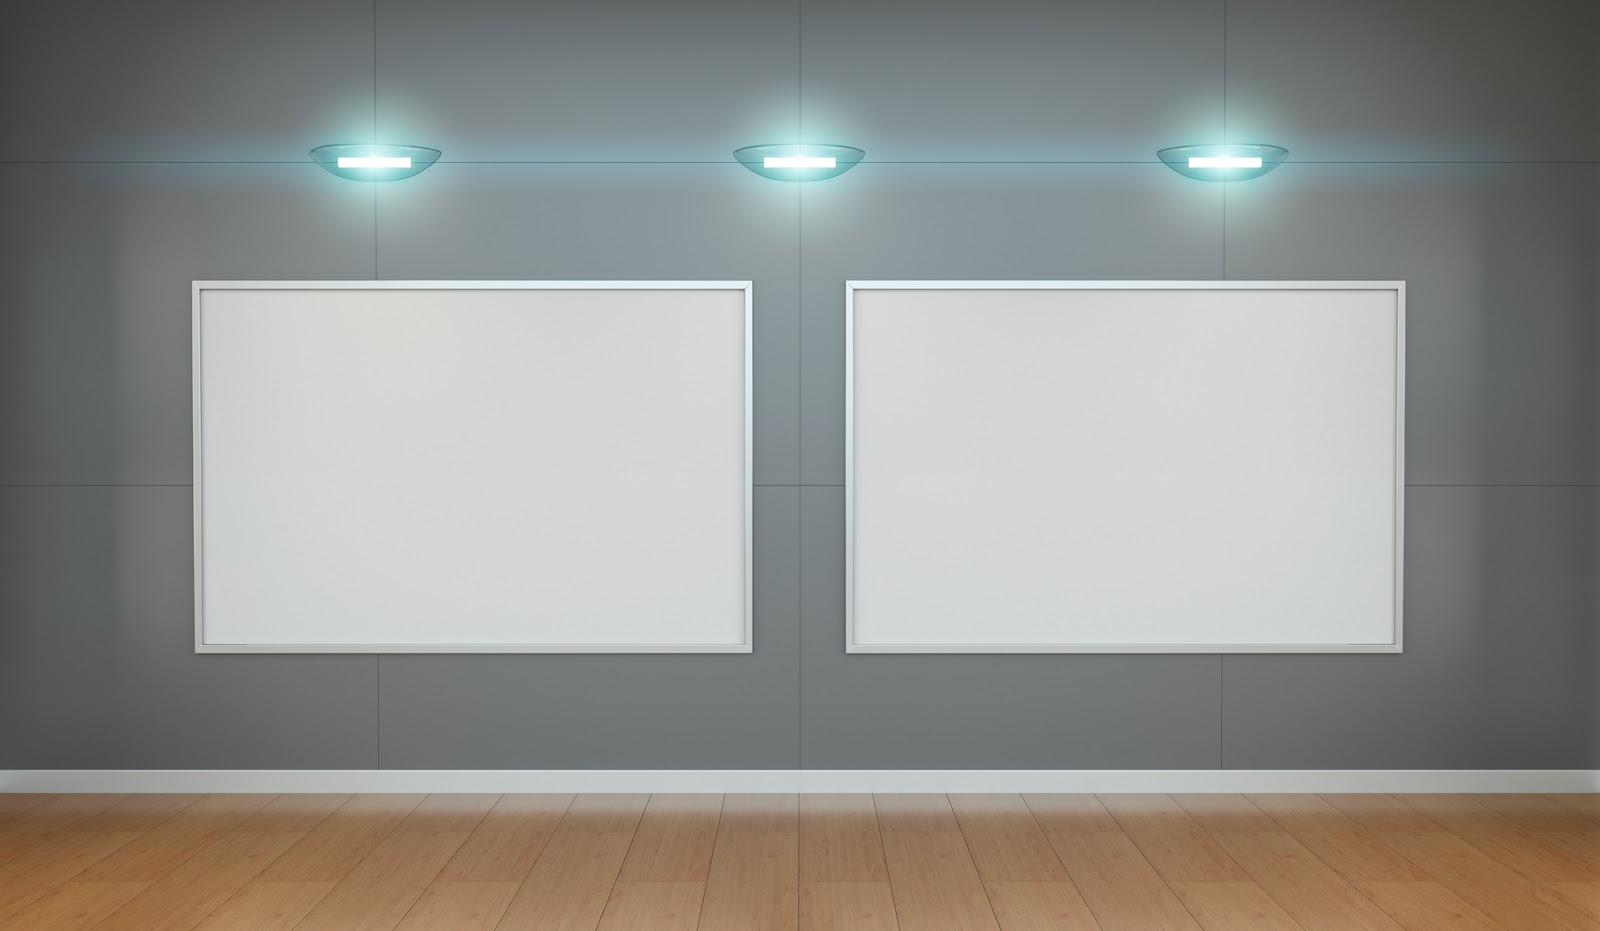 Two white blanks canvas on grey wall with lamps 3D rendering